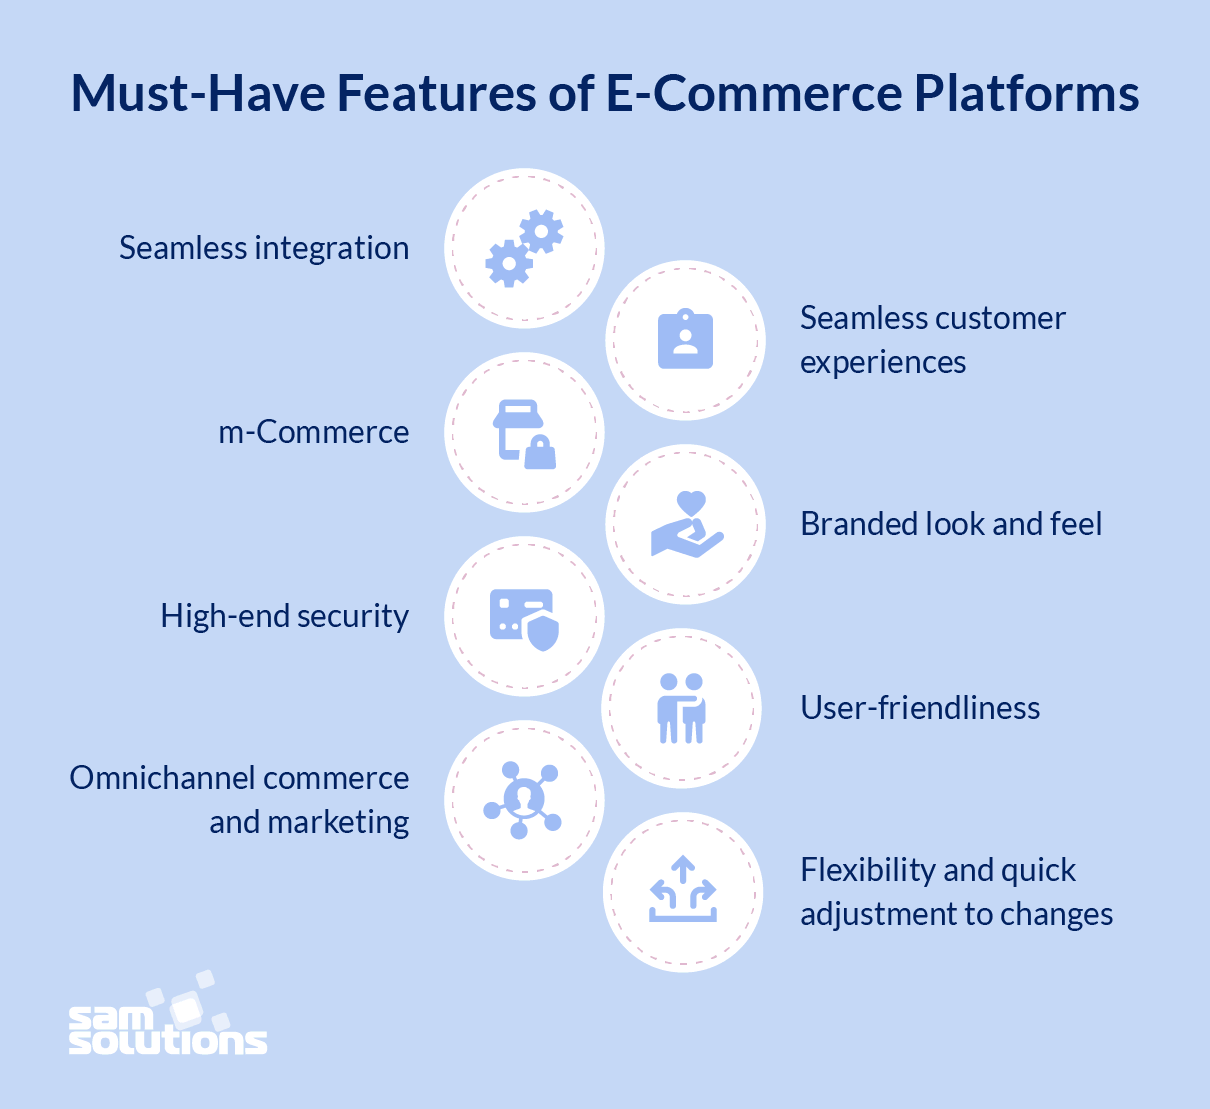 features-of-e-commerce-platfrom-photo